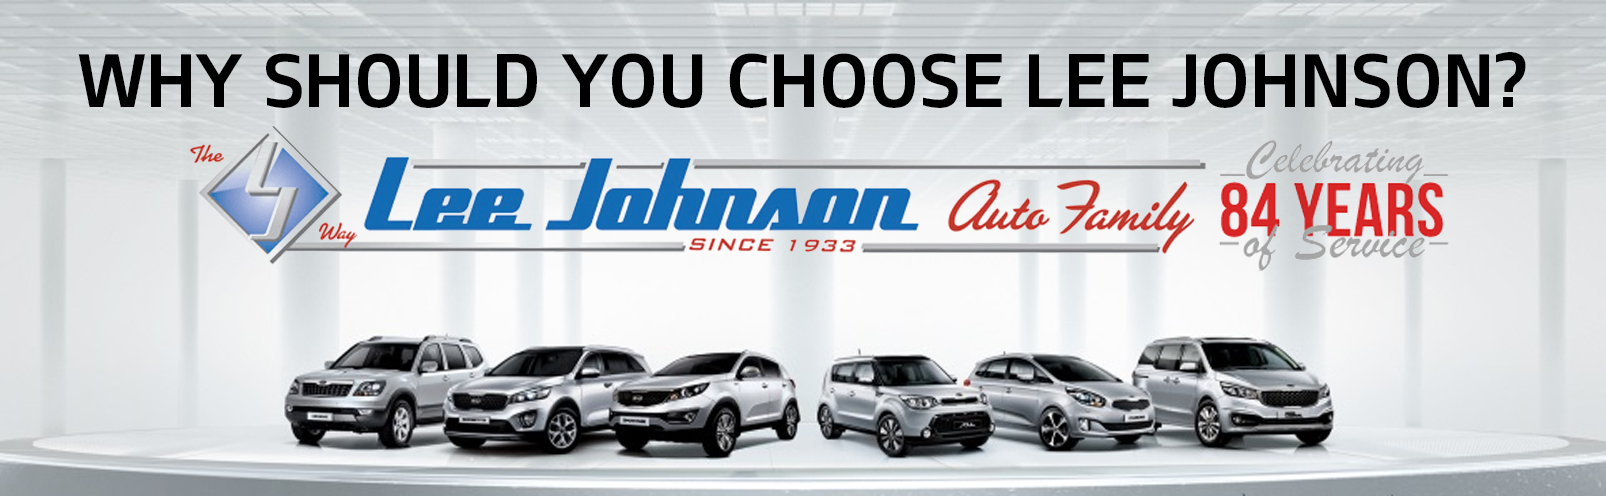 Why should you choose Lee Johnson? Lee Johnson Logo